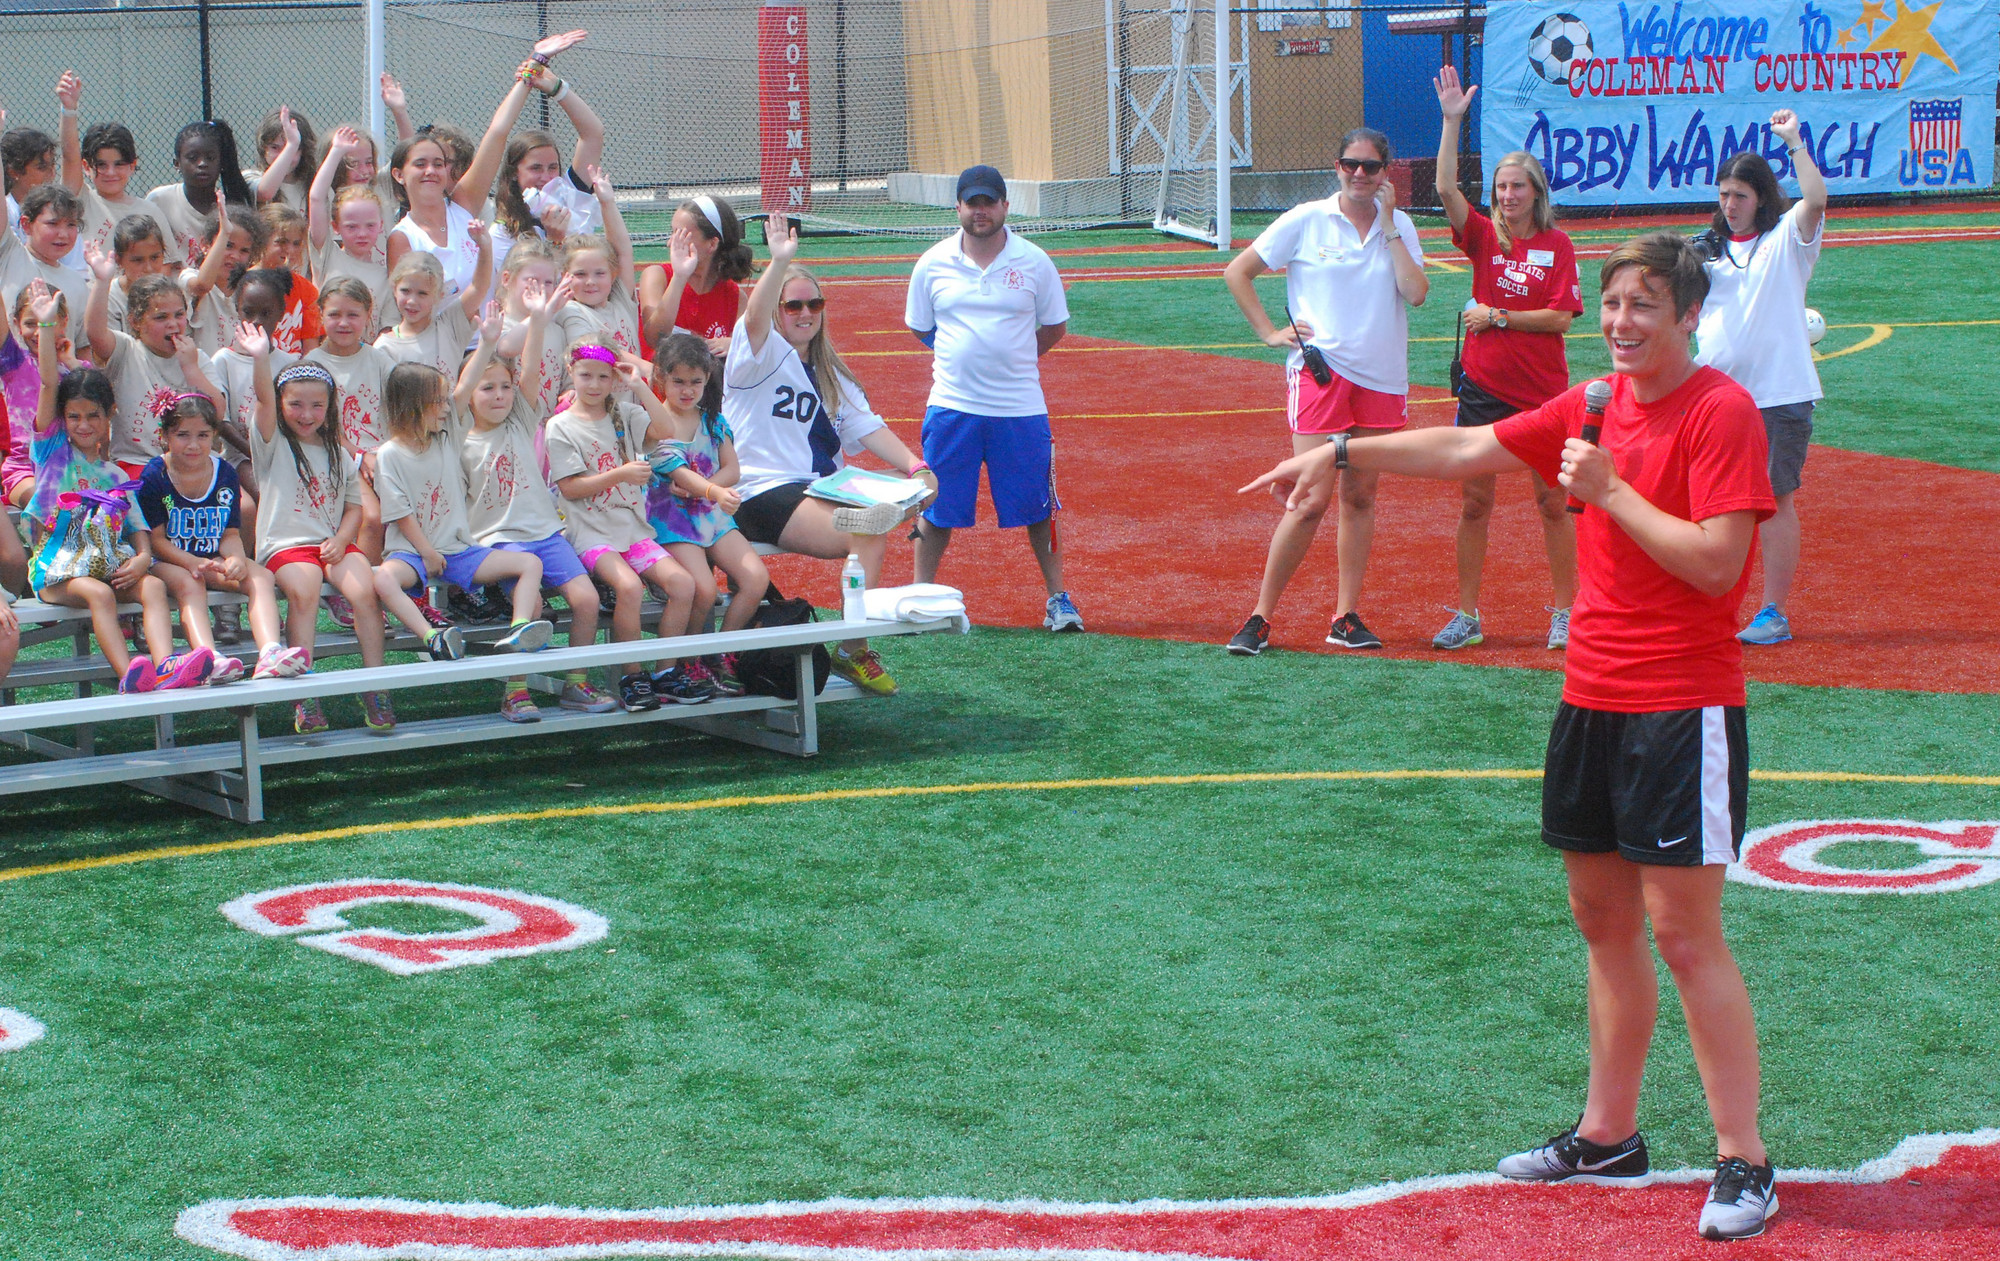 Wambach spoke to Coleman campers about the importance of �dreaming big.""